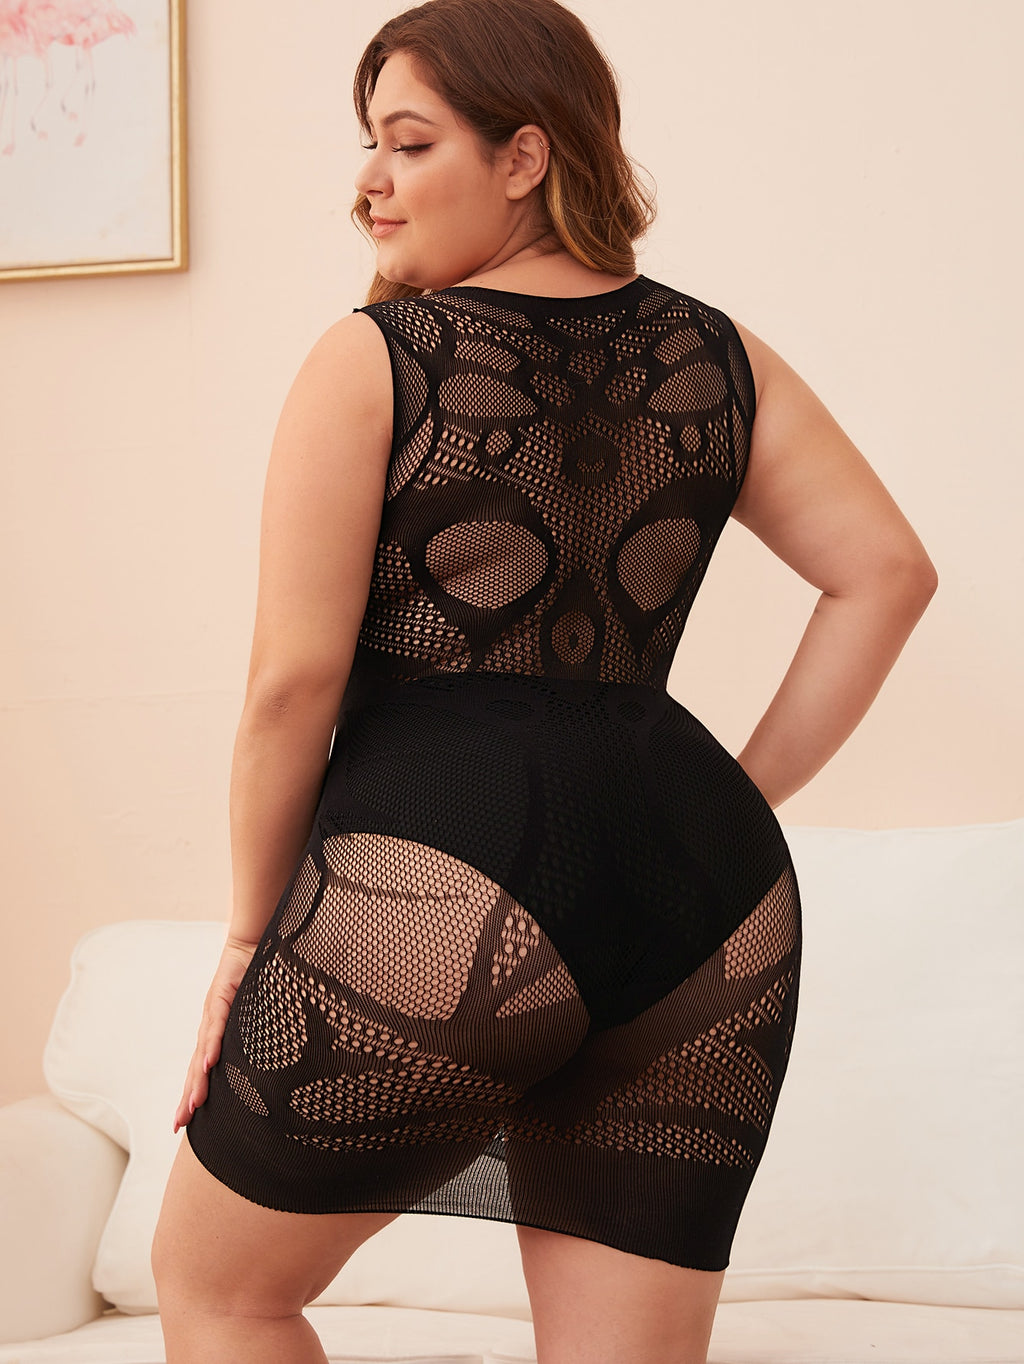 Plus Size Stretchy See Through Overlay Dress Without Lingerie Set